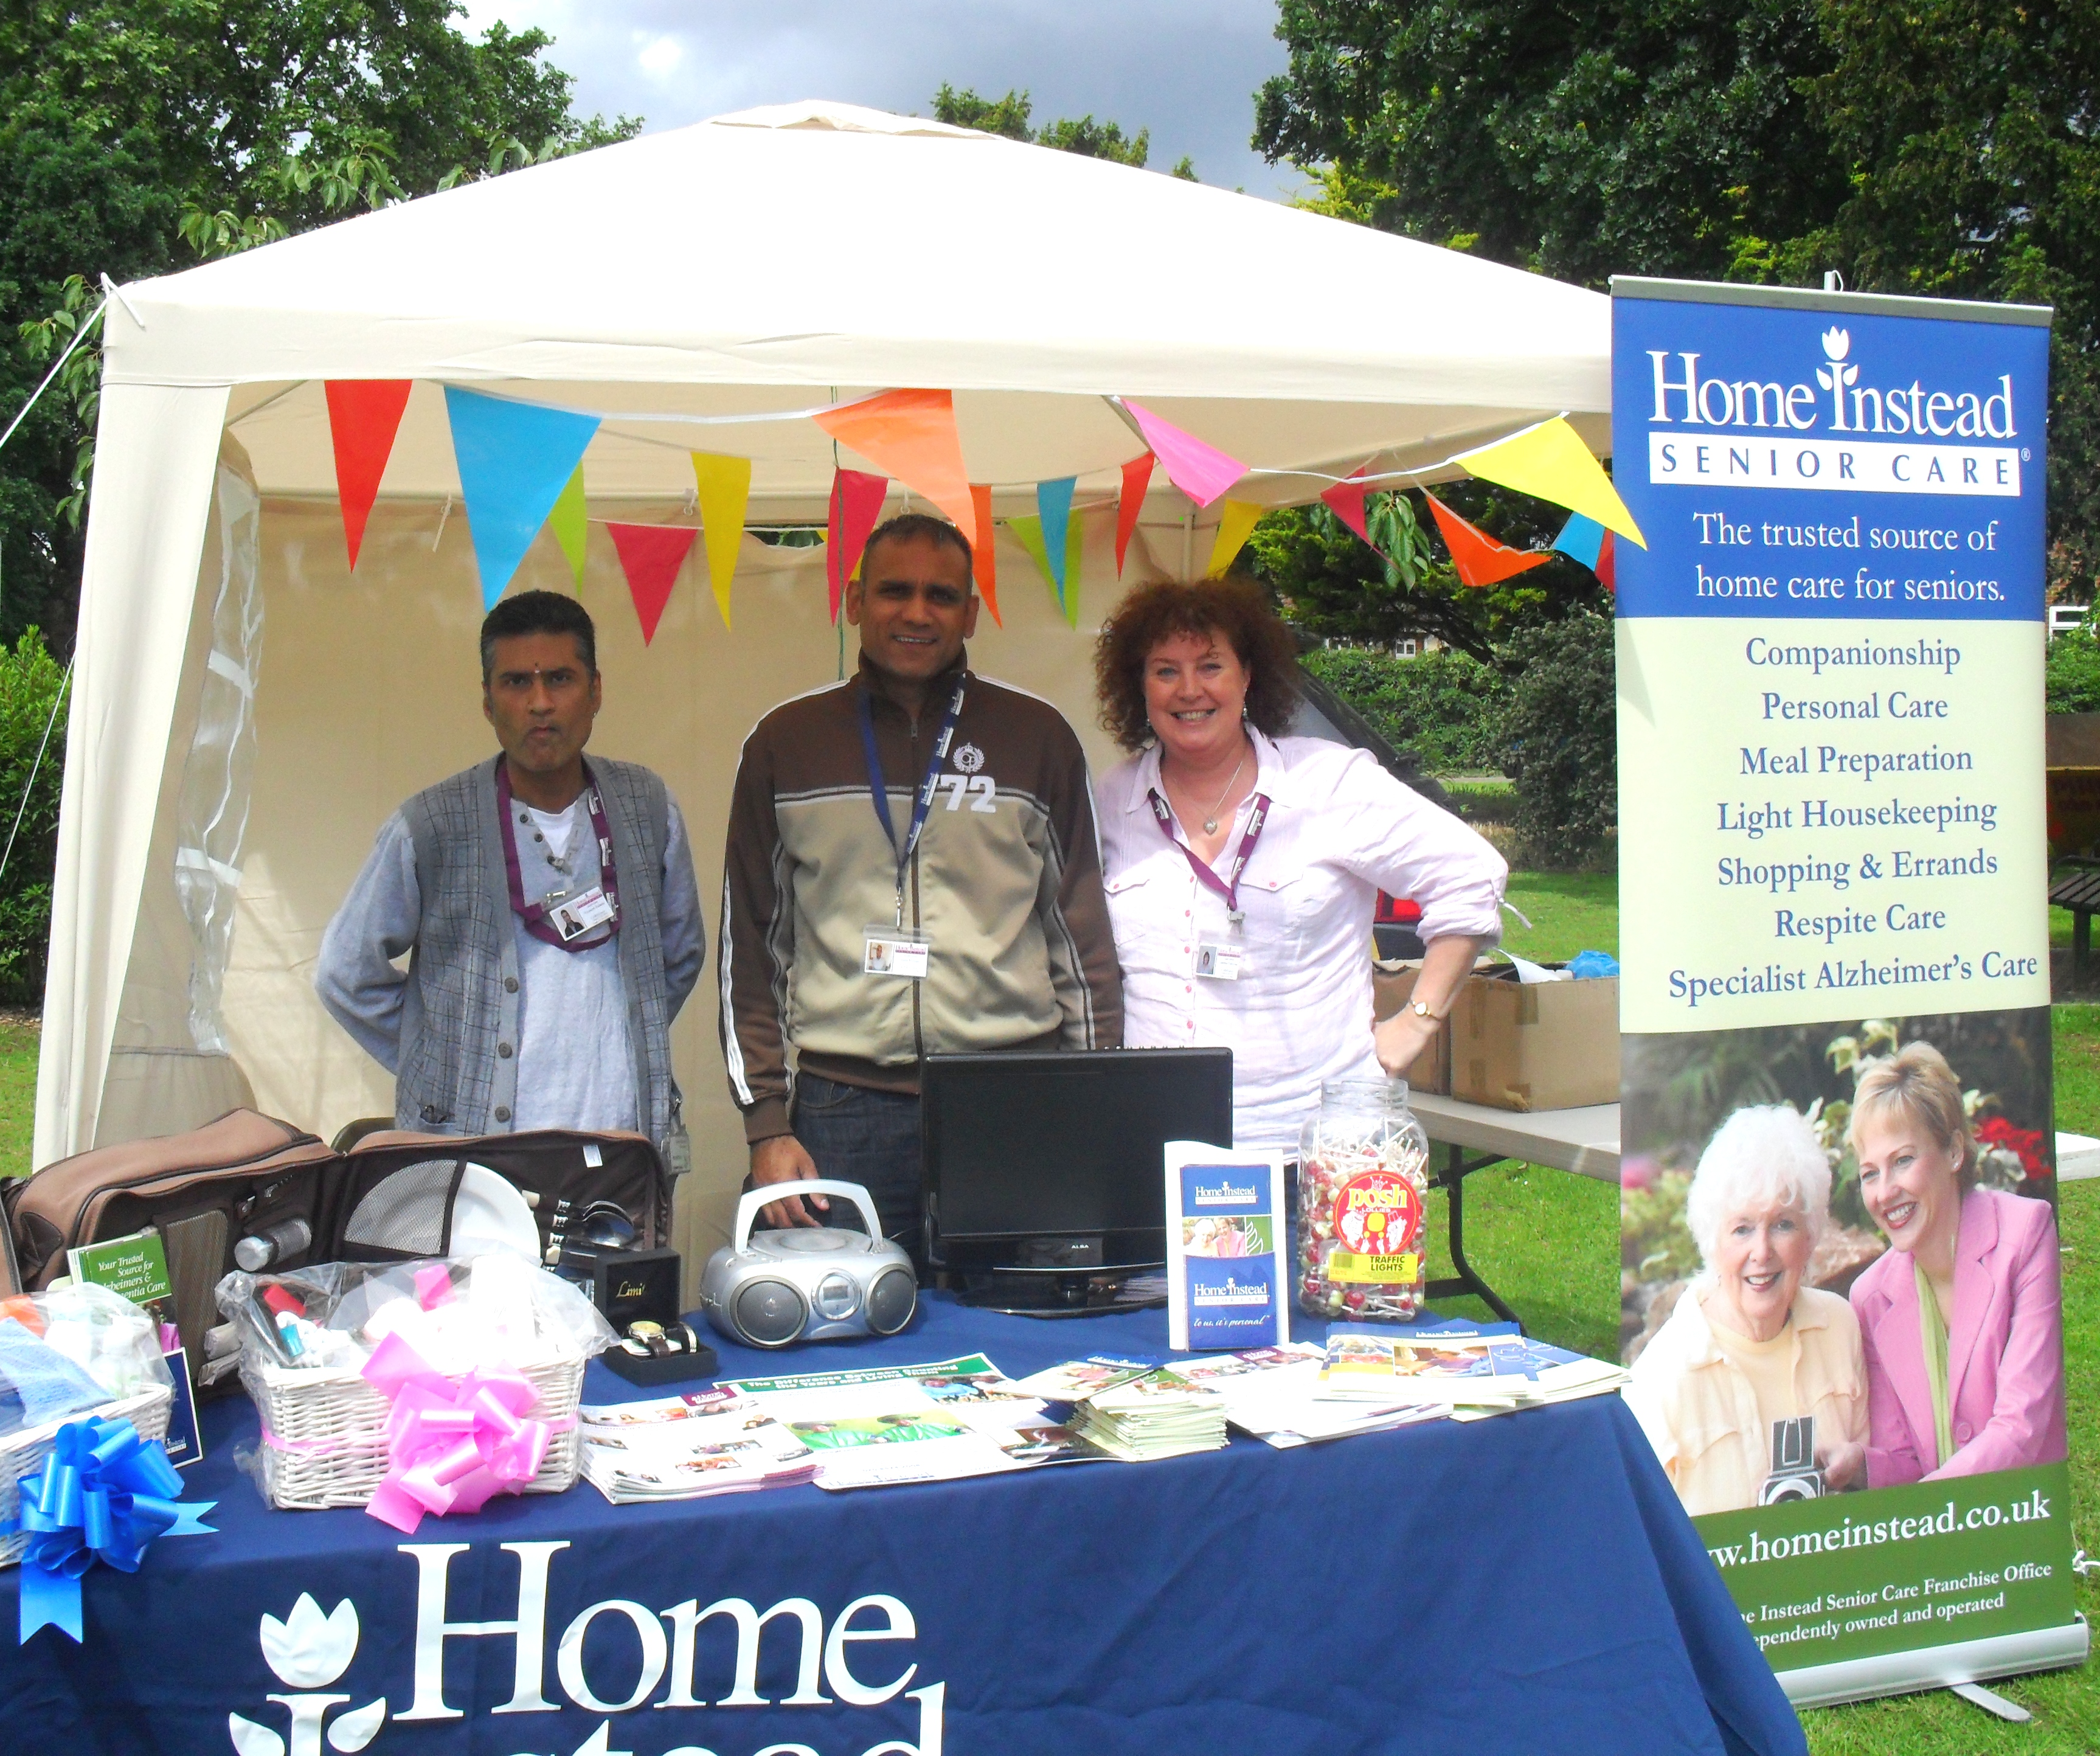 Home Instead Ealing owner Tony Hussein and team members in Home Instead's stall at the Hanwell Carnival